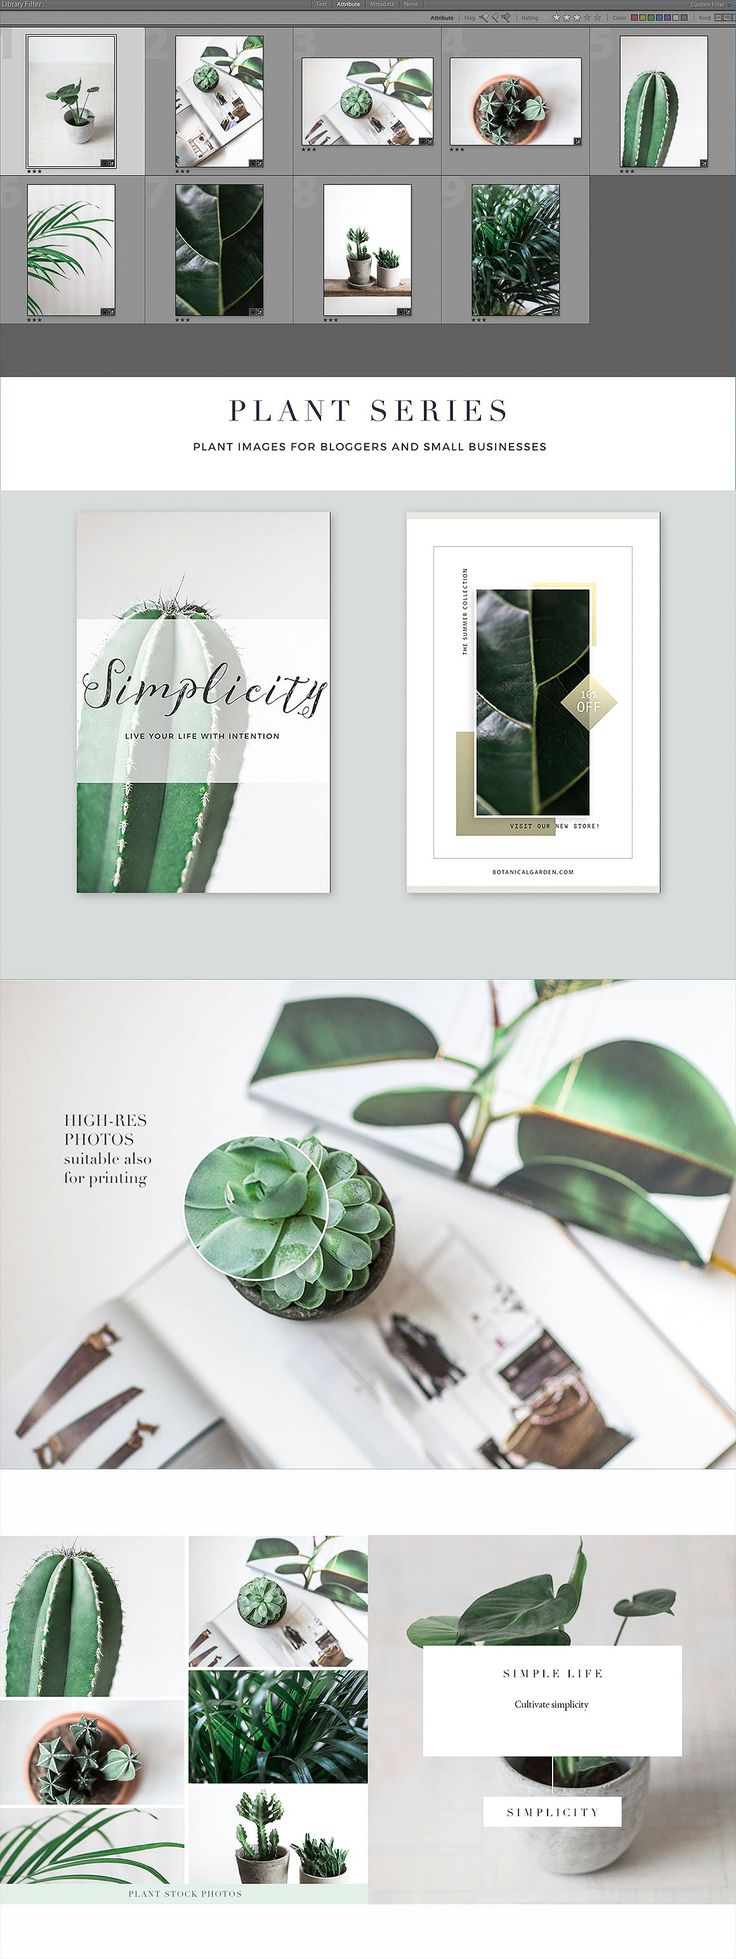 Botanical green stock photos for bloggers and creative people  by Nellaino on @creativ…